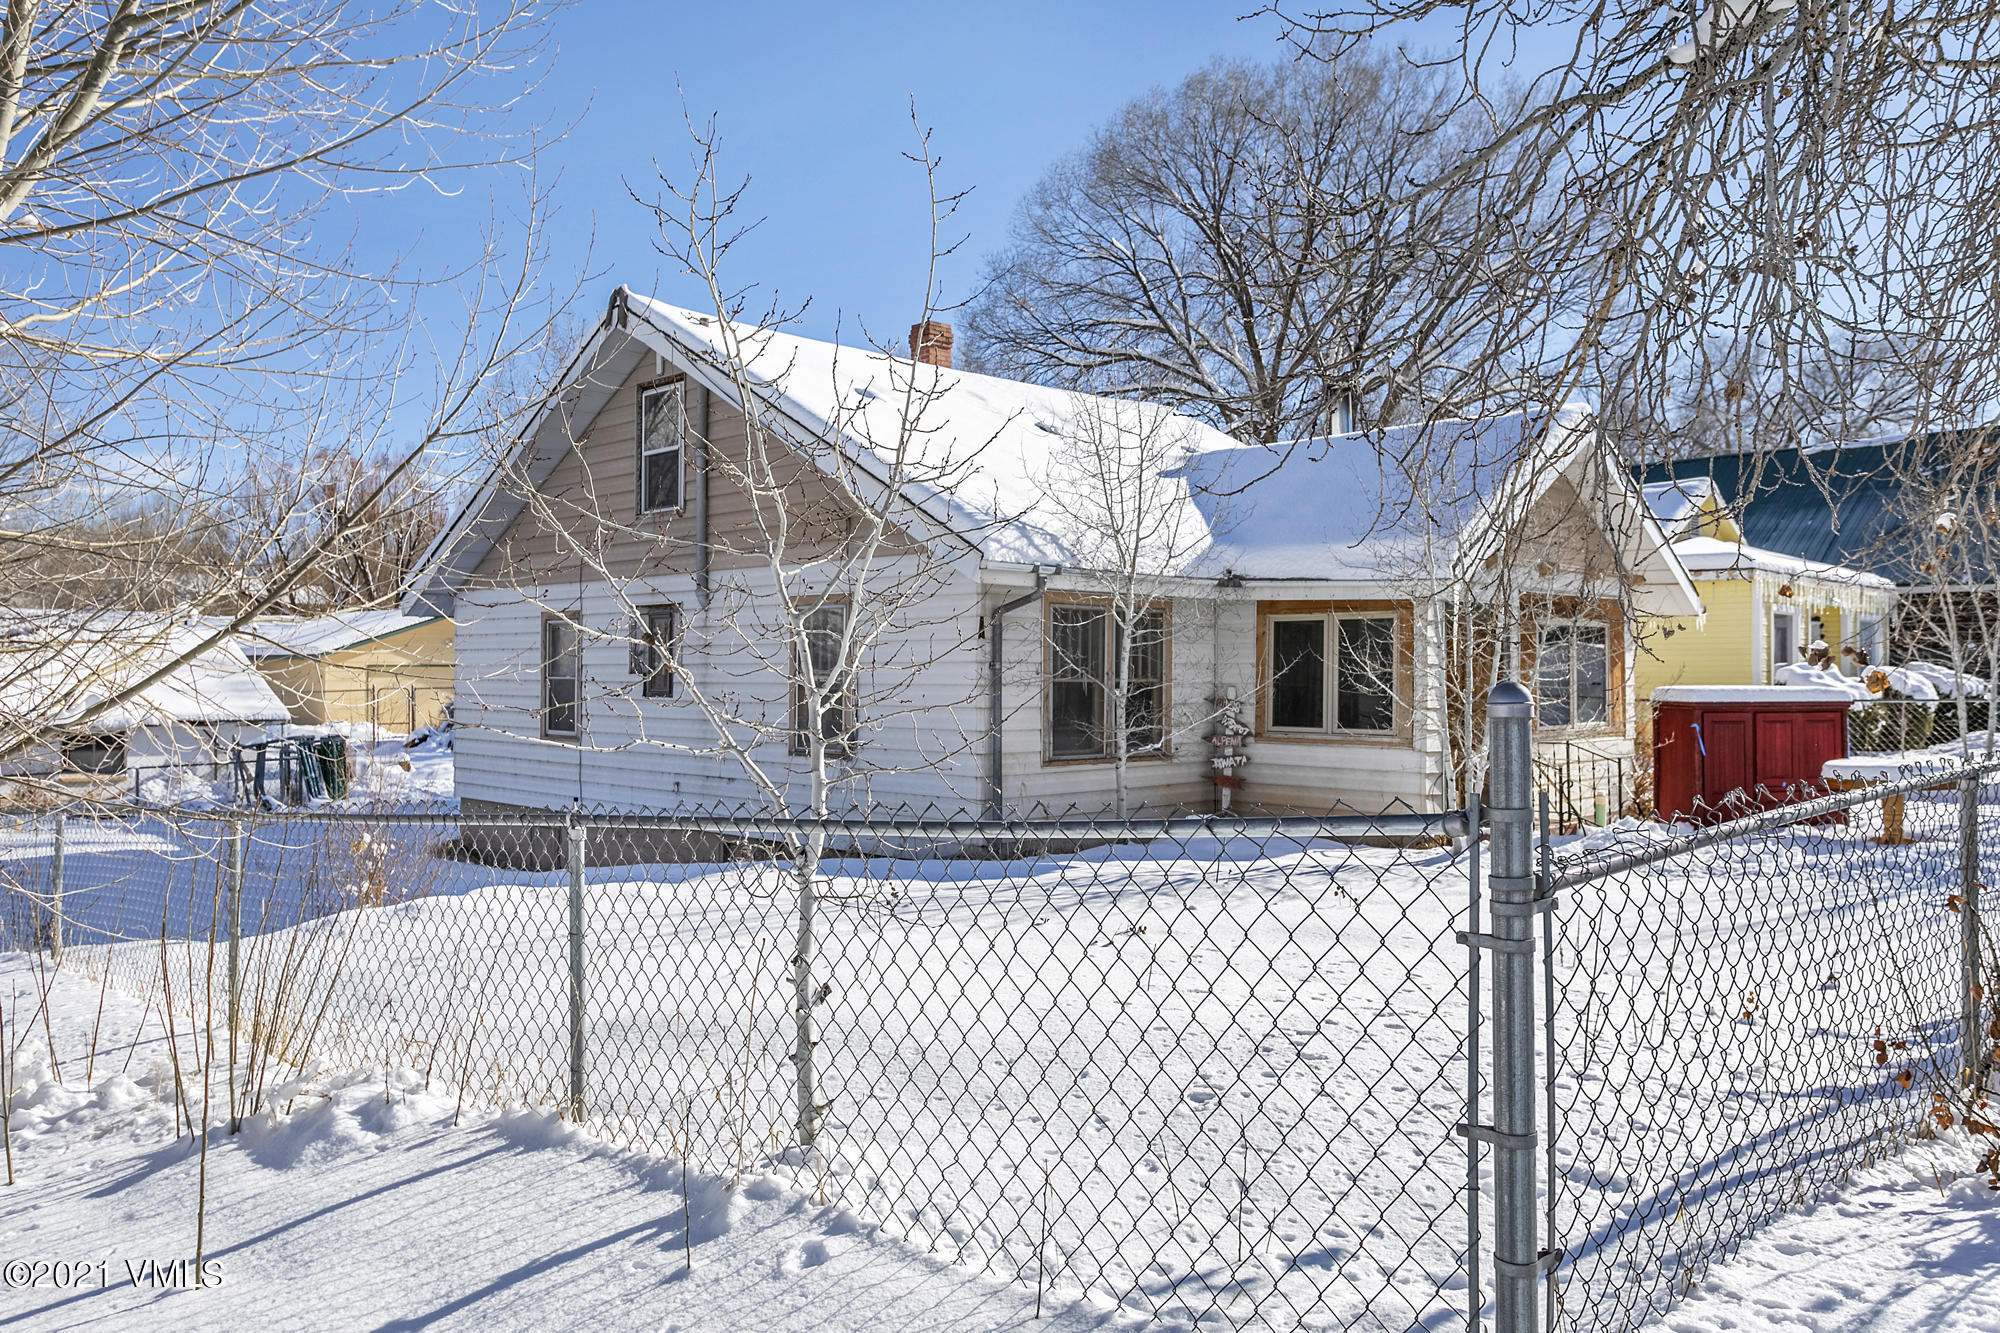 Fantastic opportunity to own in old Gypsum, no HOA's large corner lot with plenty of potential with a commercial zoning, walking distance to Eagle Valley High School, Ridley's Gypsum Rec Center, parks and baseball fields. This property has 3 bedrooms and 1 full bath with 2 additional 1/4 bathrooms and a detached garage.